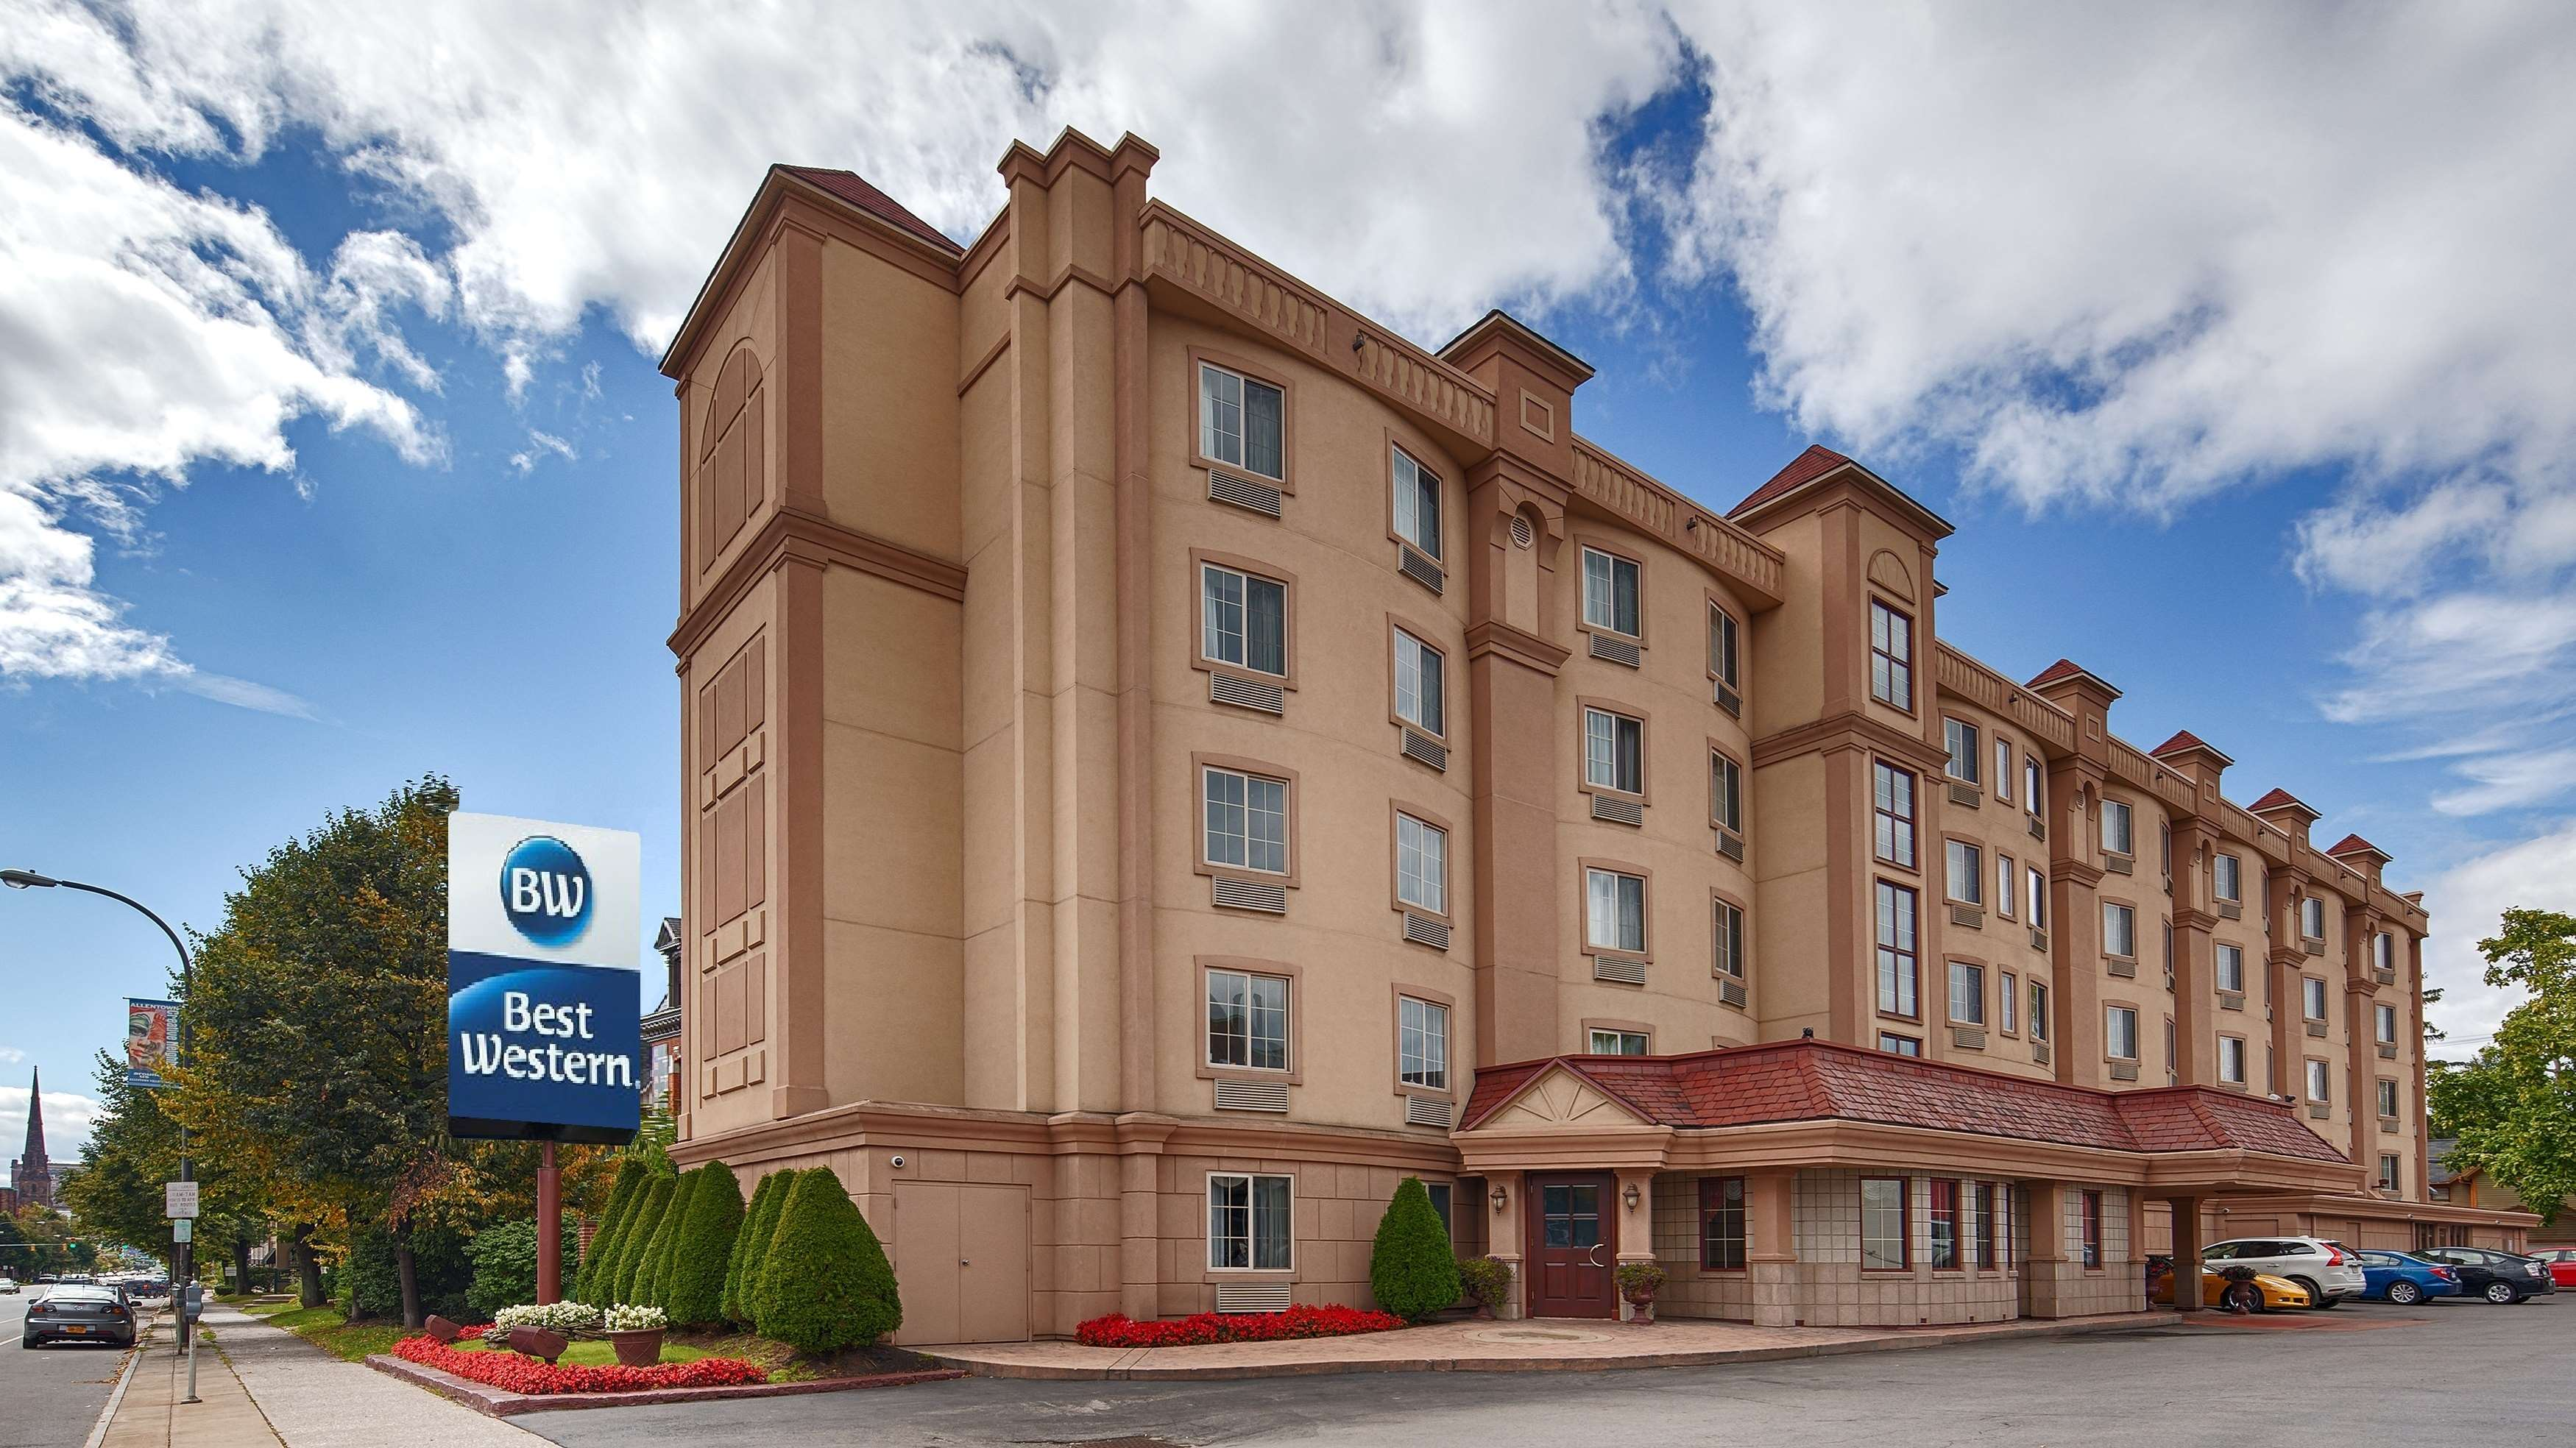 Best Western - On The Avenue image 0